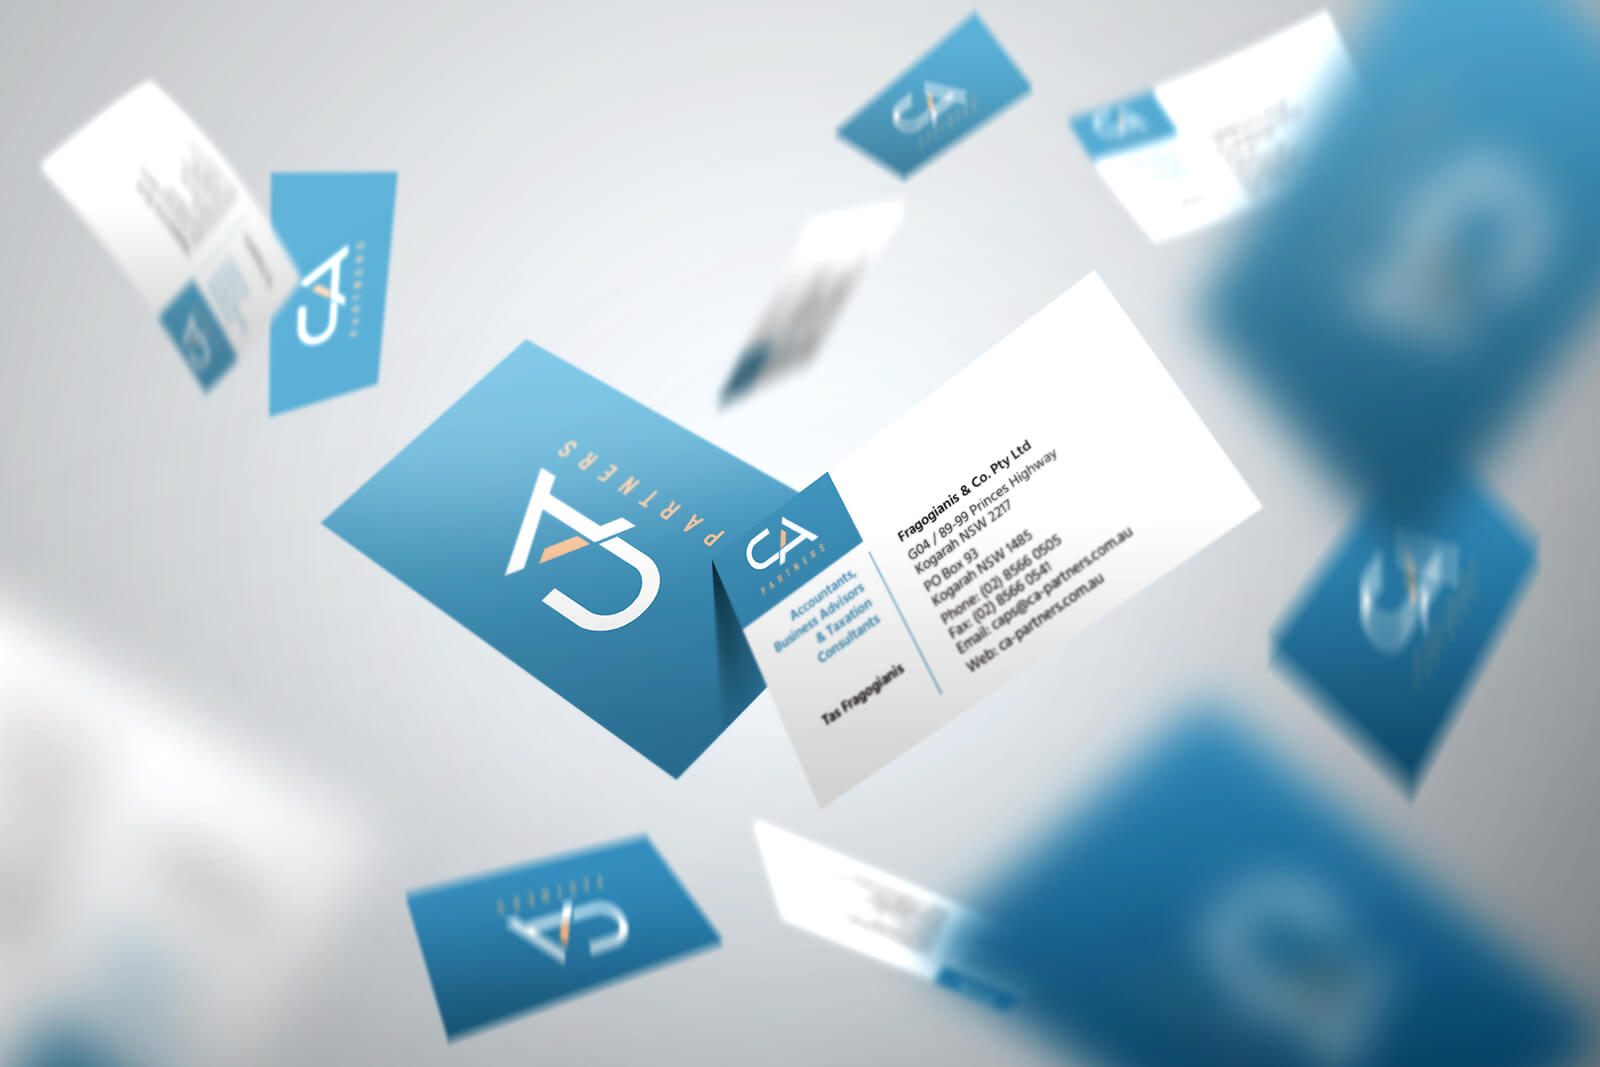 business cards, stationery graphic design service for lawyers tax accountants by freelance designer metrodesign bexley kogarah sydney